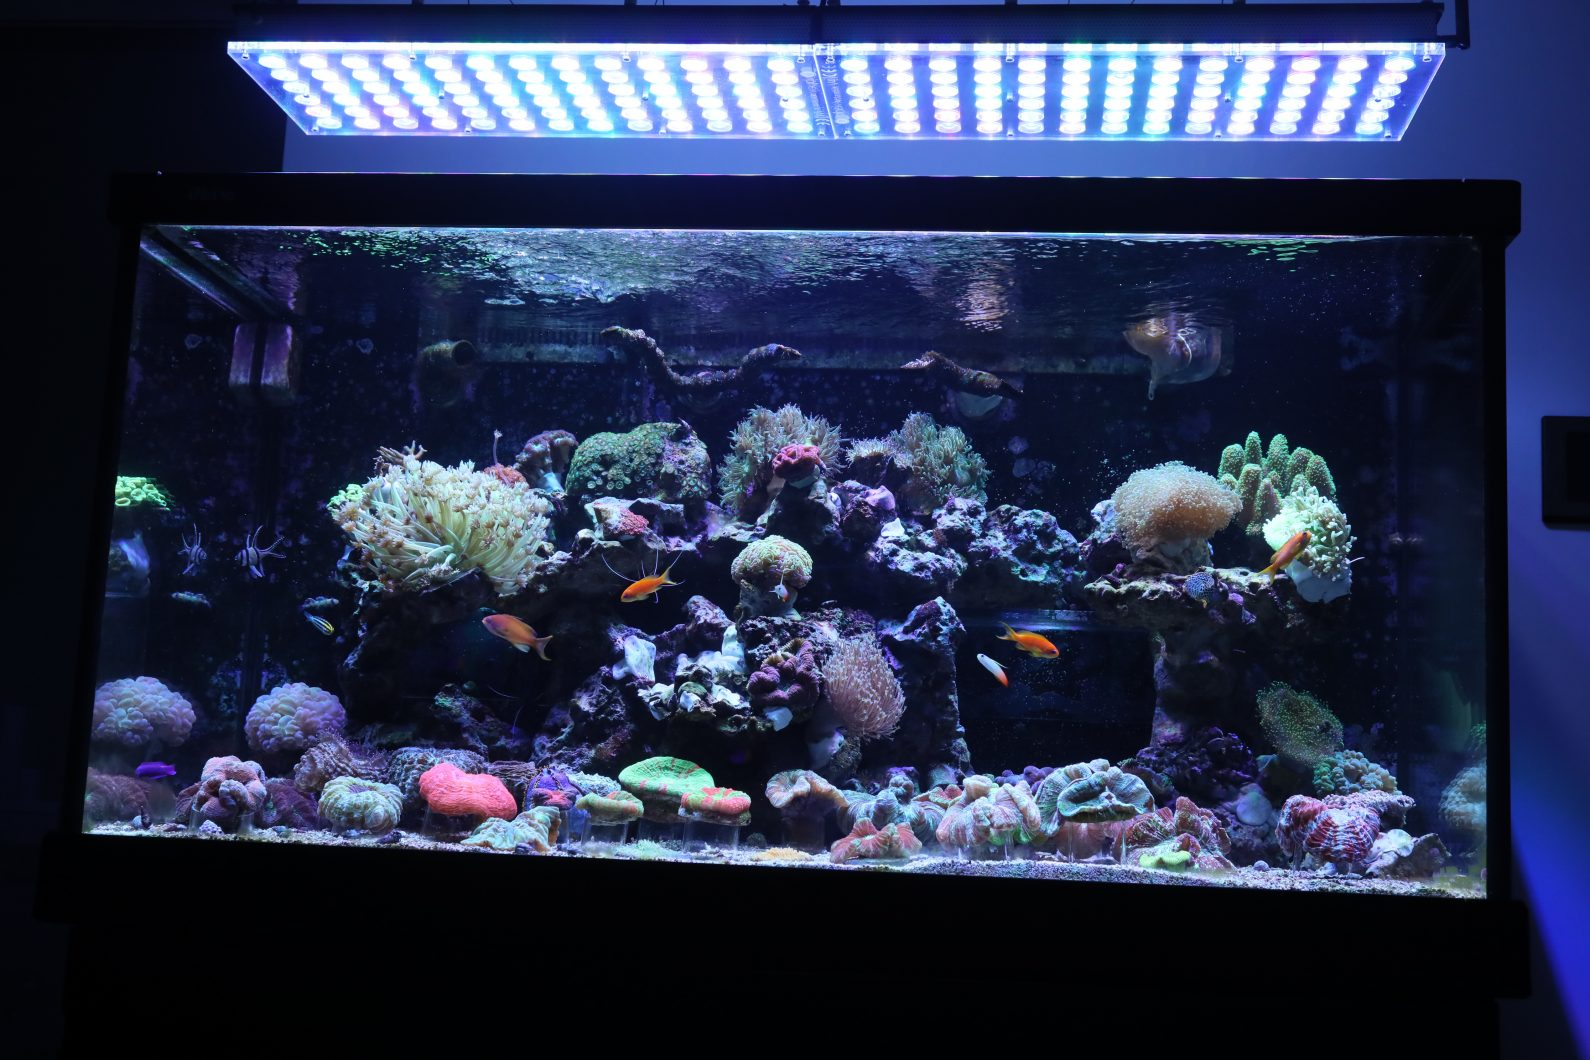 Orphek_Reef_Aquarium_LED_Light_Atlantik_v4_best_LED_Aquarium_lighting9